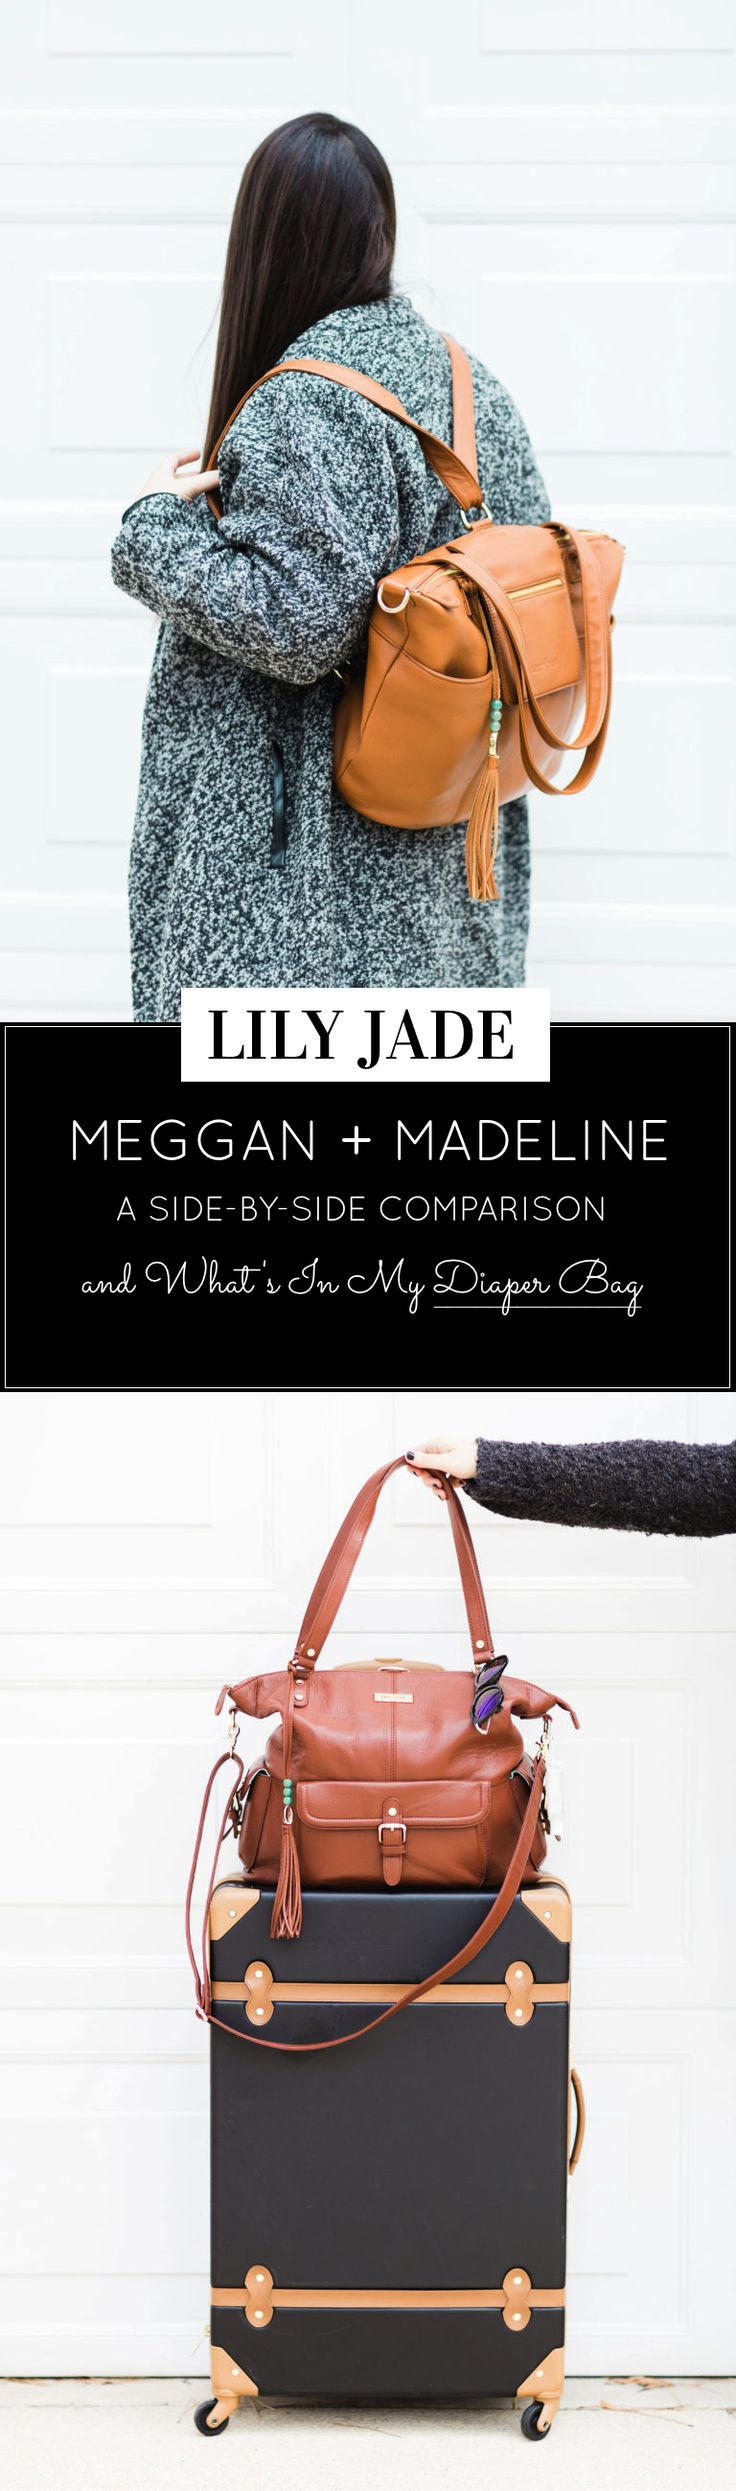 A review of the brand new Lily Jade Madeline diaper bag, plus a side-by-side look at my Meggan, what's in my Lily Jade diaper bag, and a GIVEAWAY! | glitterinc.com | @glitterinc